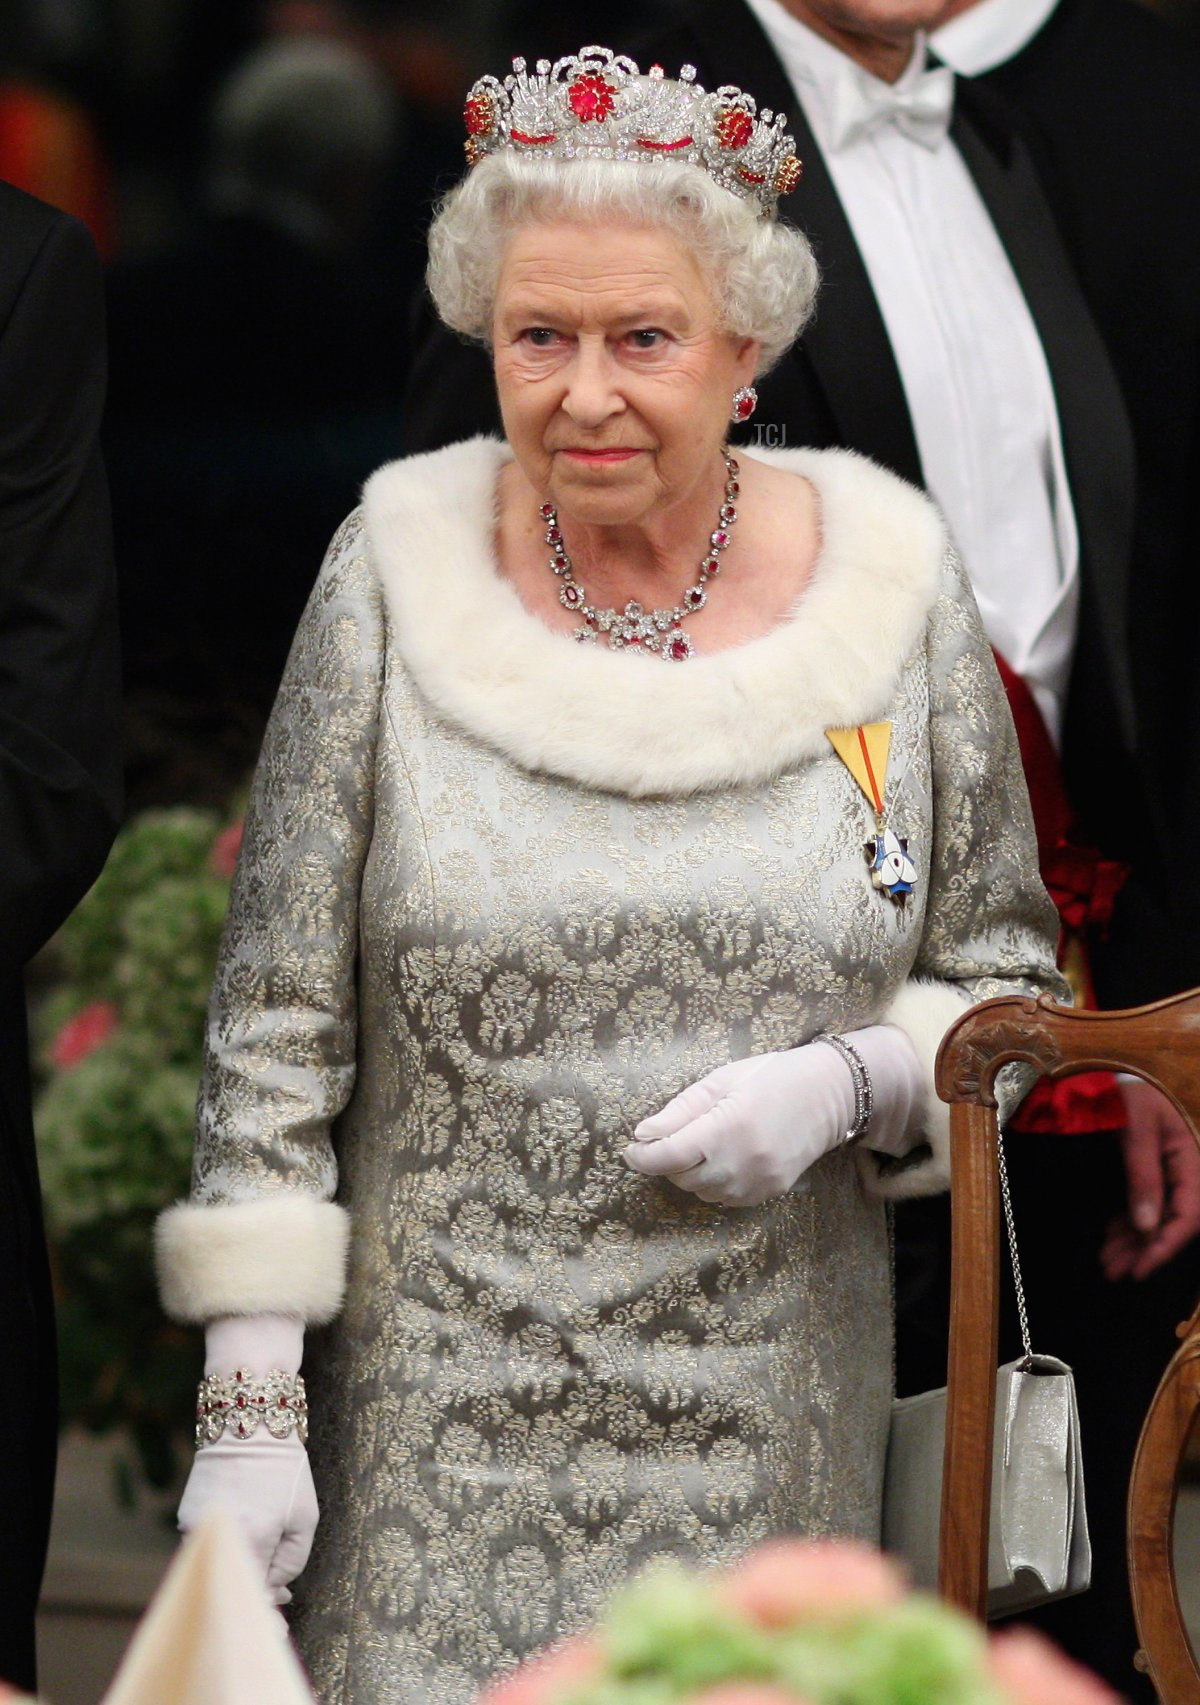 Queen Elizabeth II attends a state banquet at Brdo Castle on the first day of a two day tour of Slovenia on October 21, 2008 in Ljubljana, Slovenia